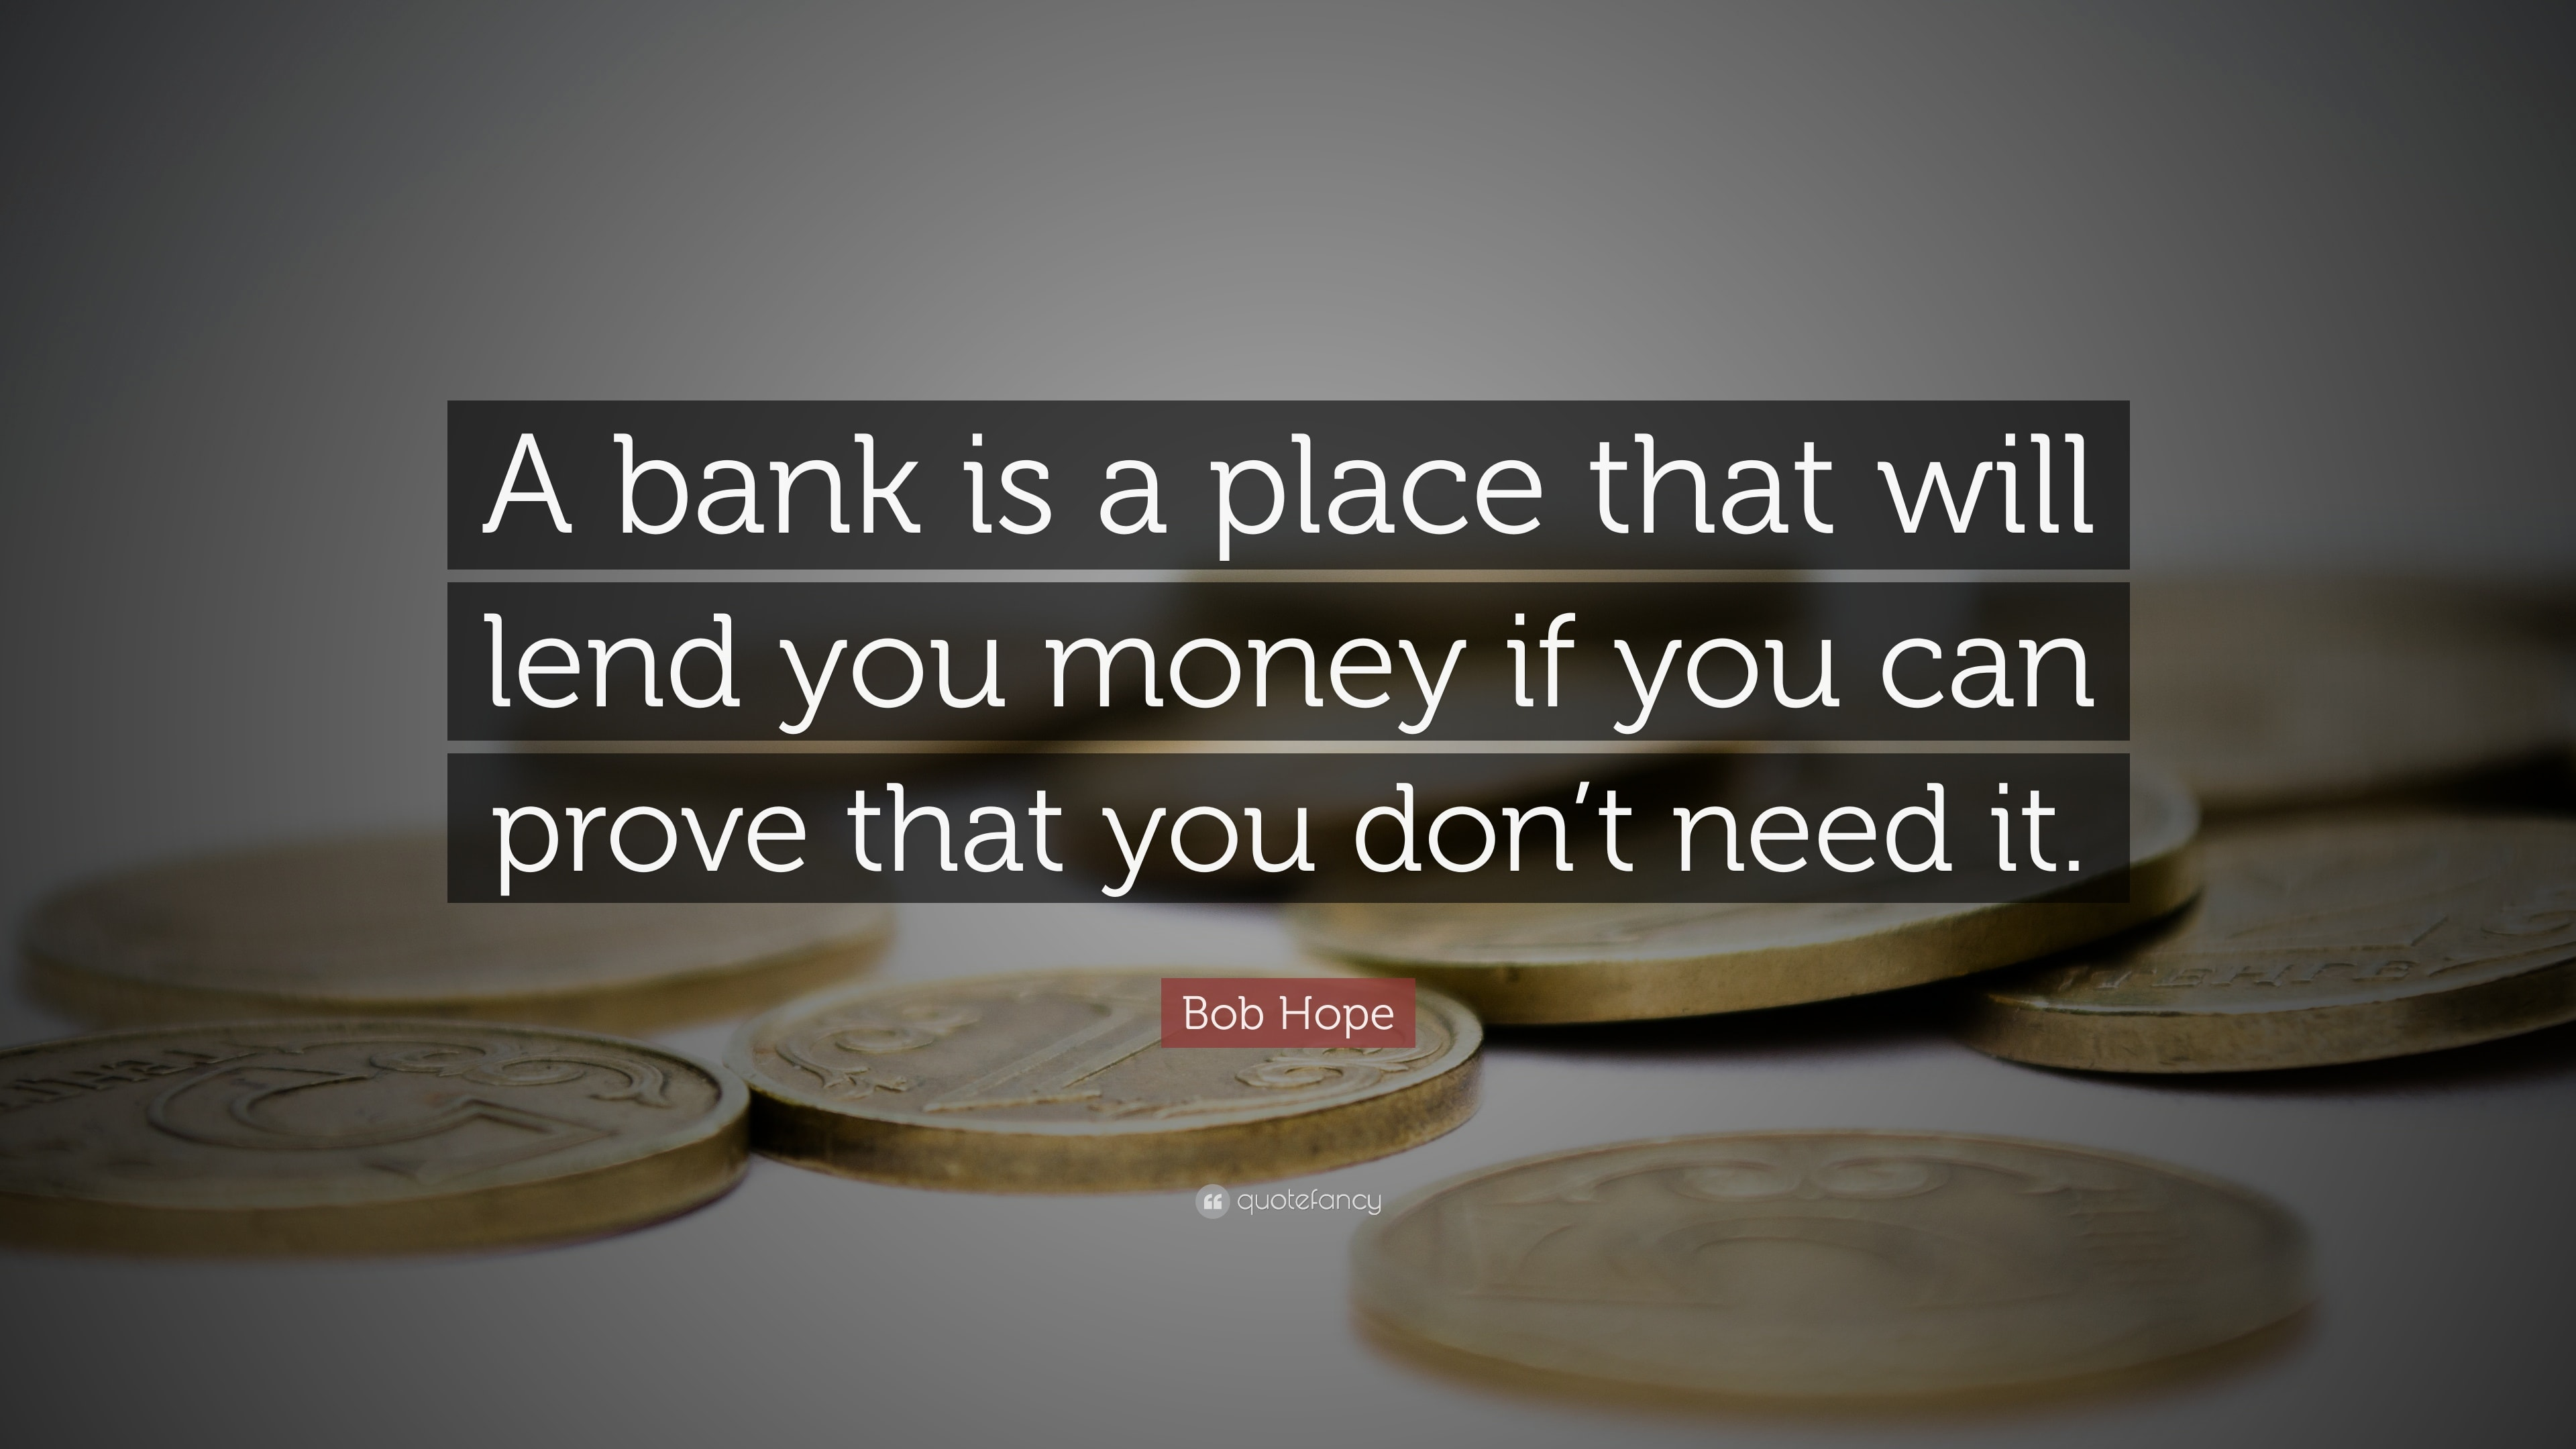 fintech startup, bank is a place that will lend your money